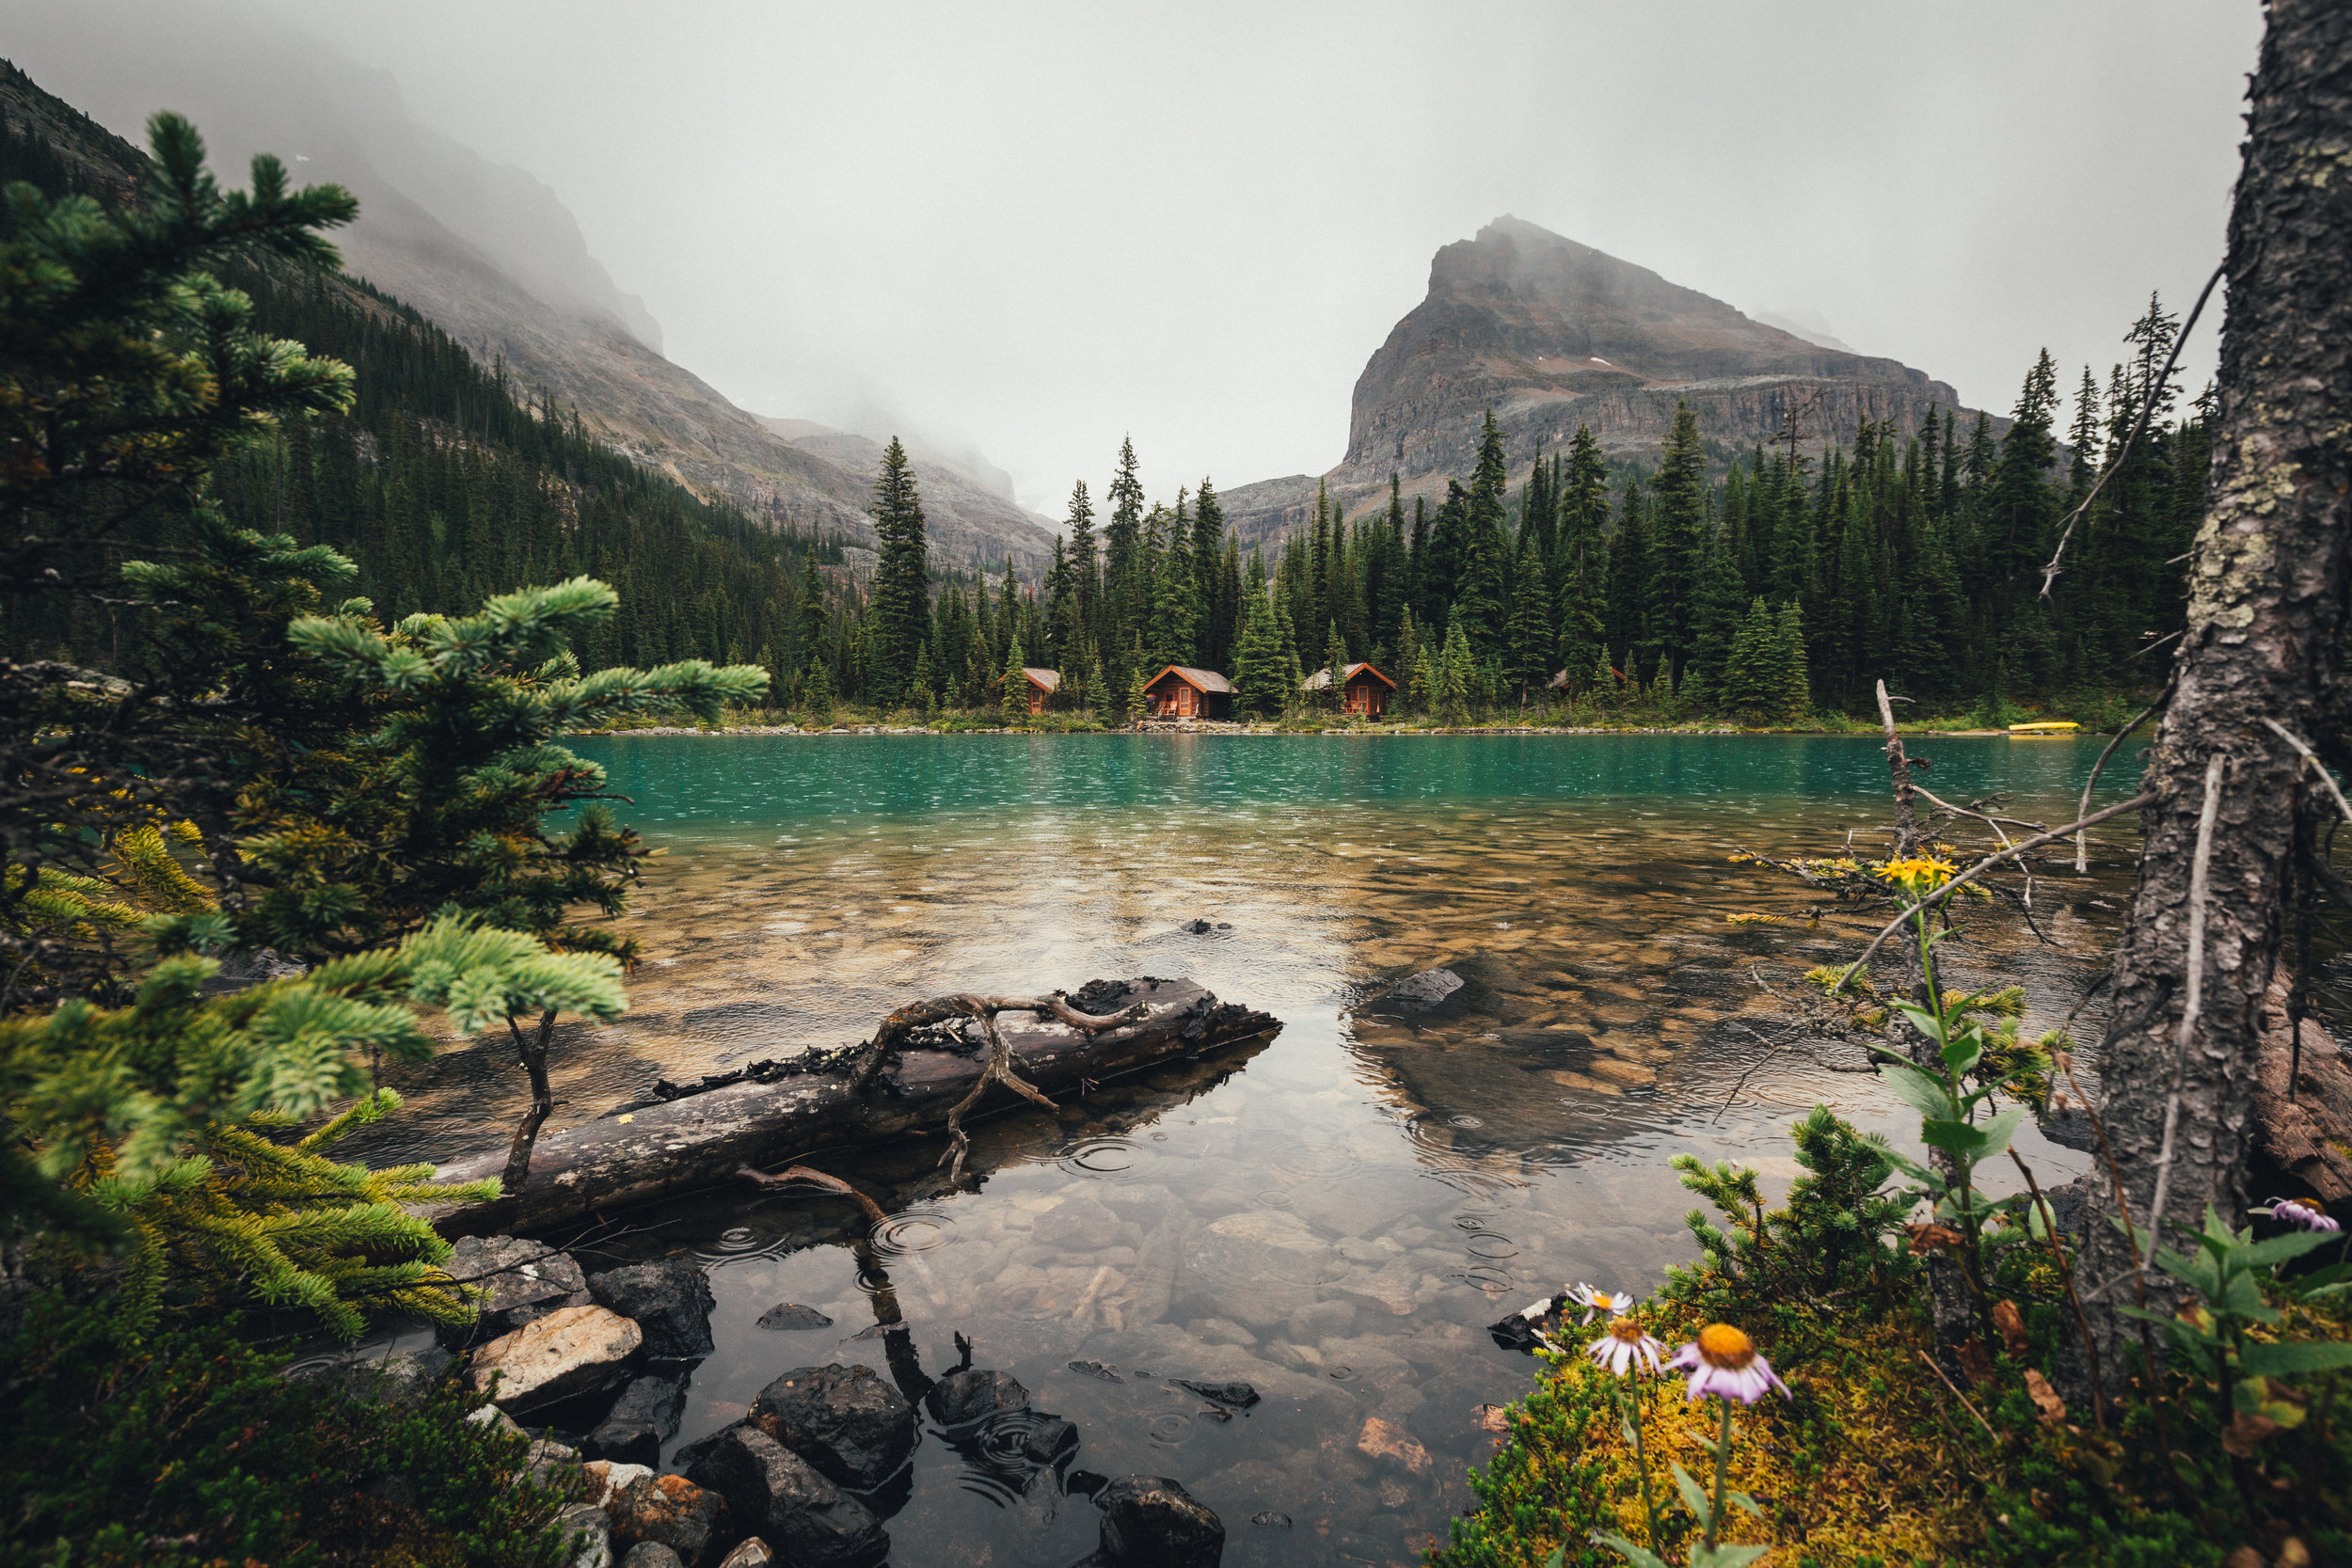 Jamie OUT / VAncouver, BC - Jamie's stunning landscape work is out of our wildest mountain dreams. Based in Vancouver, the landscape and nature expert's work speaks for itself. He's a master at tones, highlighting the blues of the crystal clear water and the colours of the west coast he sets out to capture.